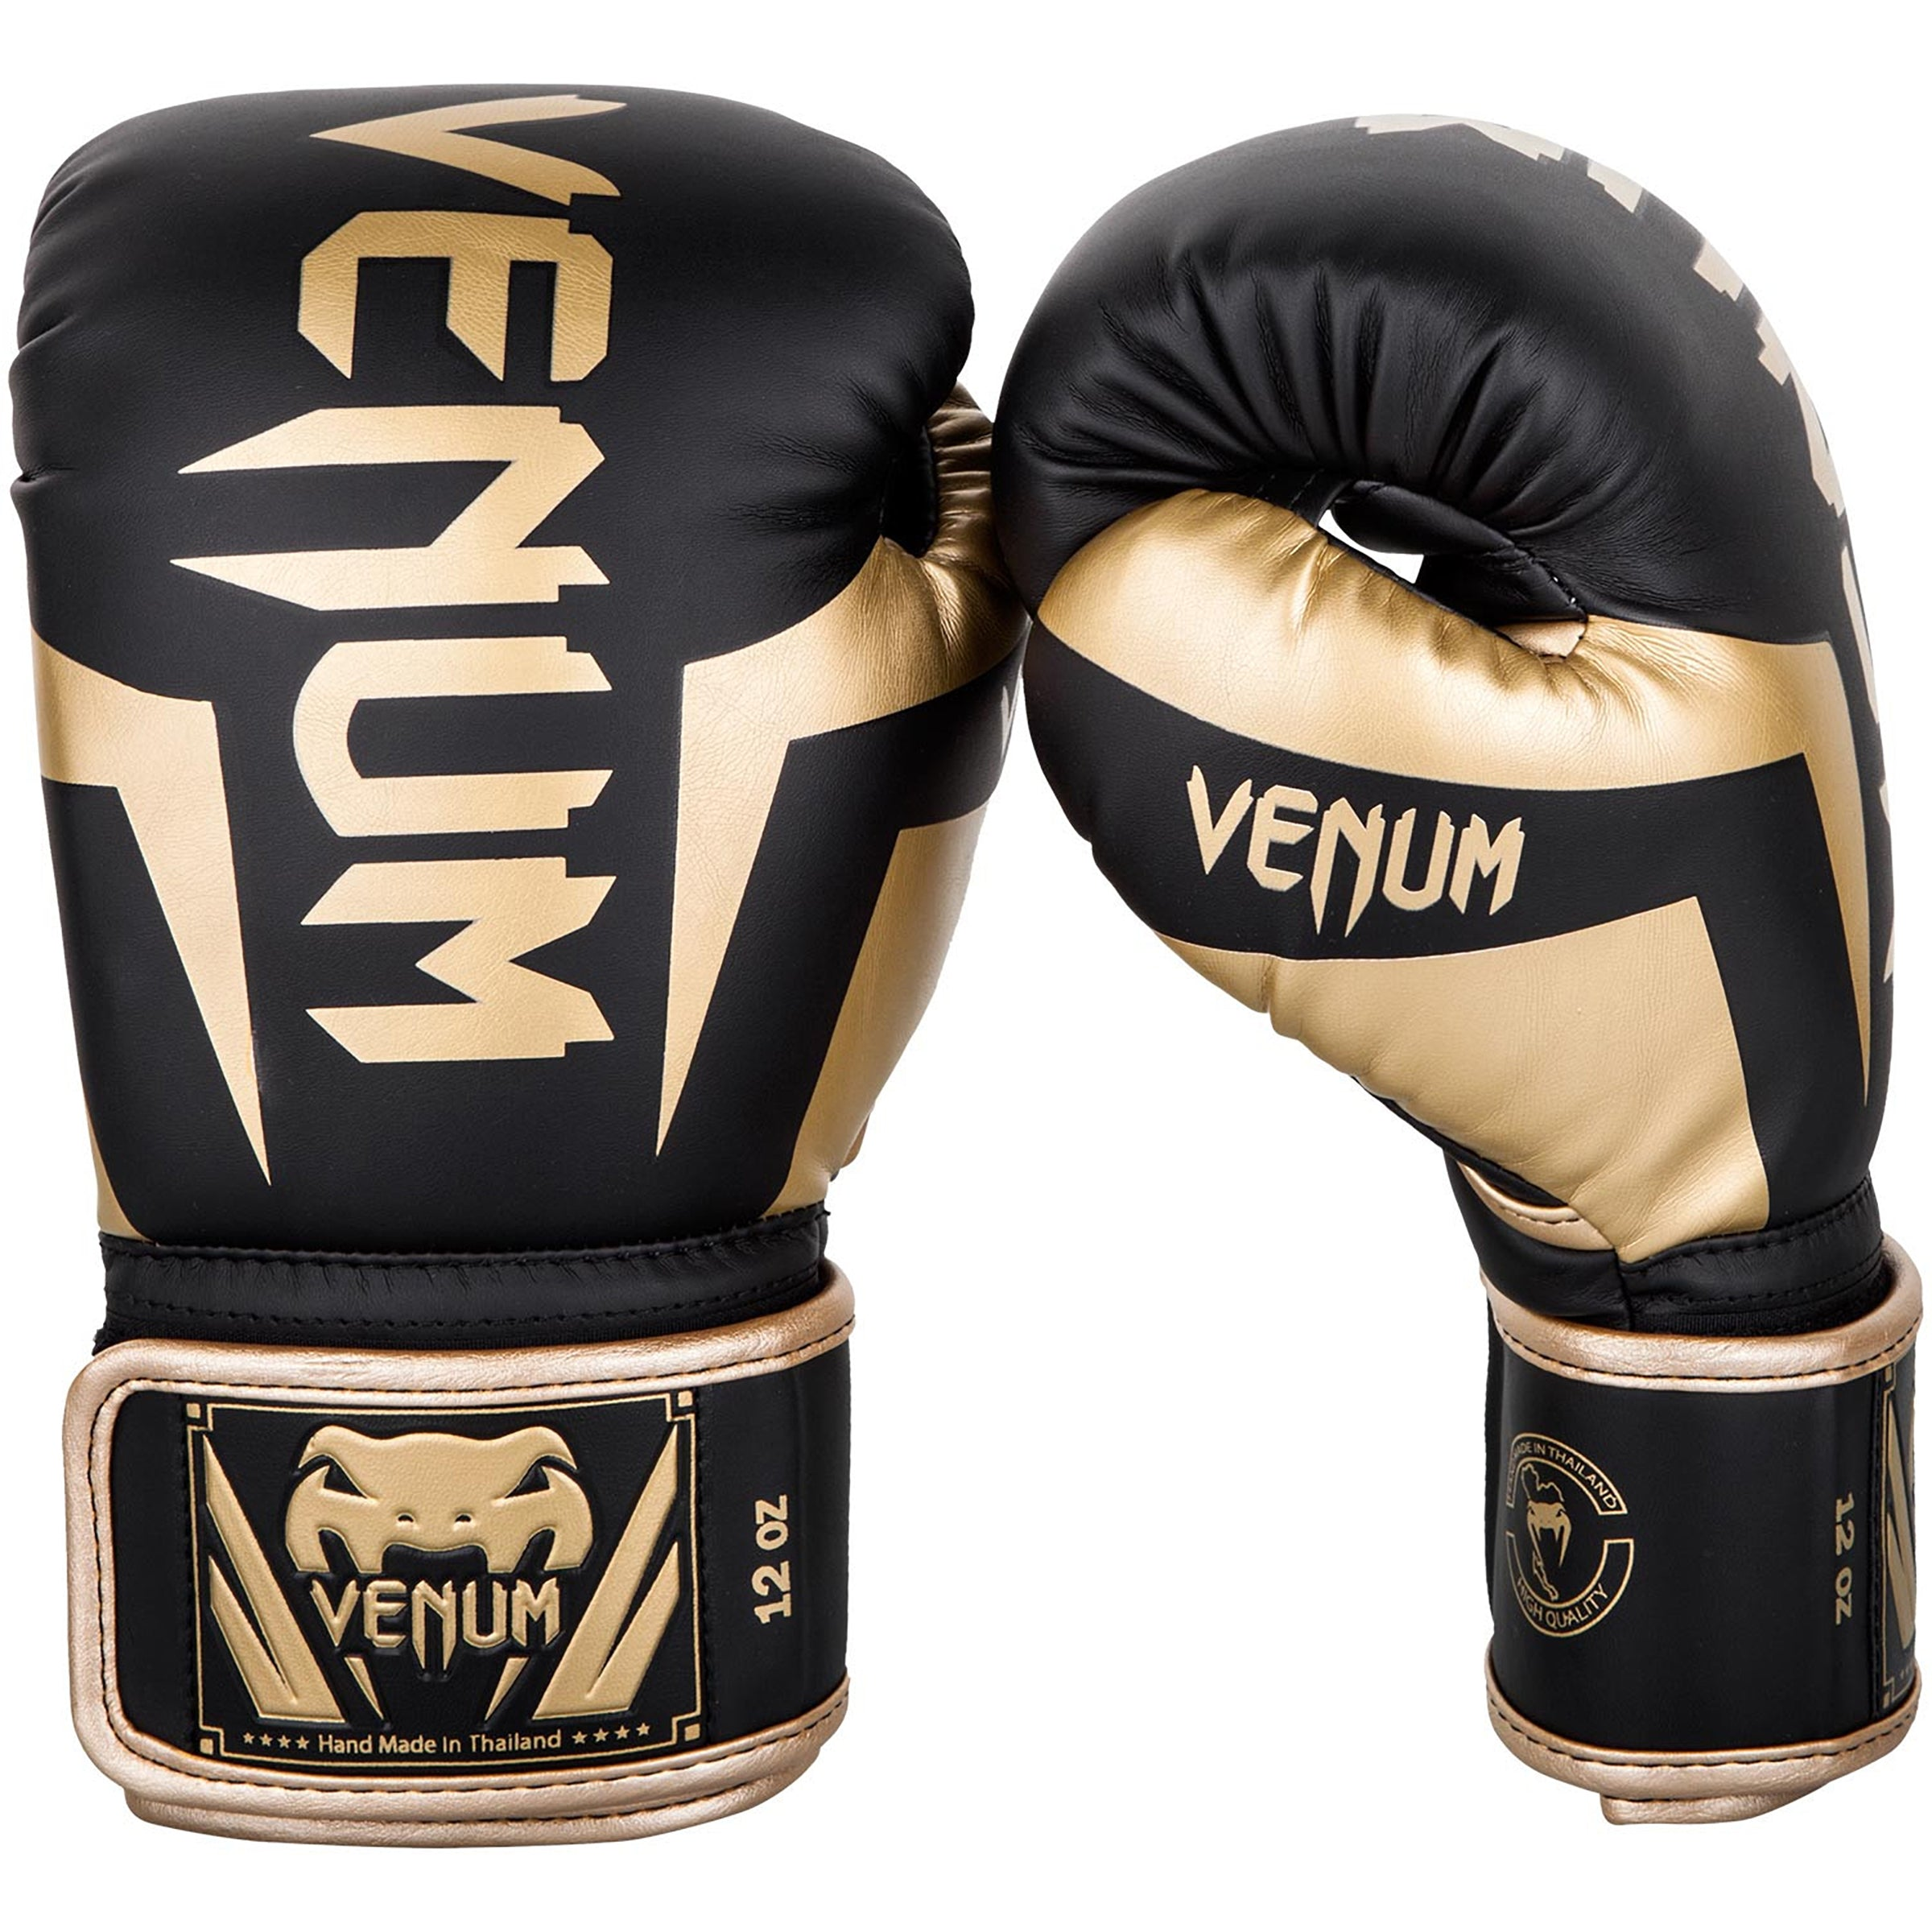 Image of Venum Elite Boxing Gloves